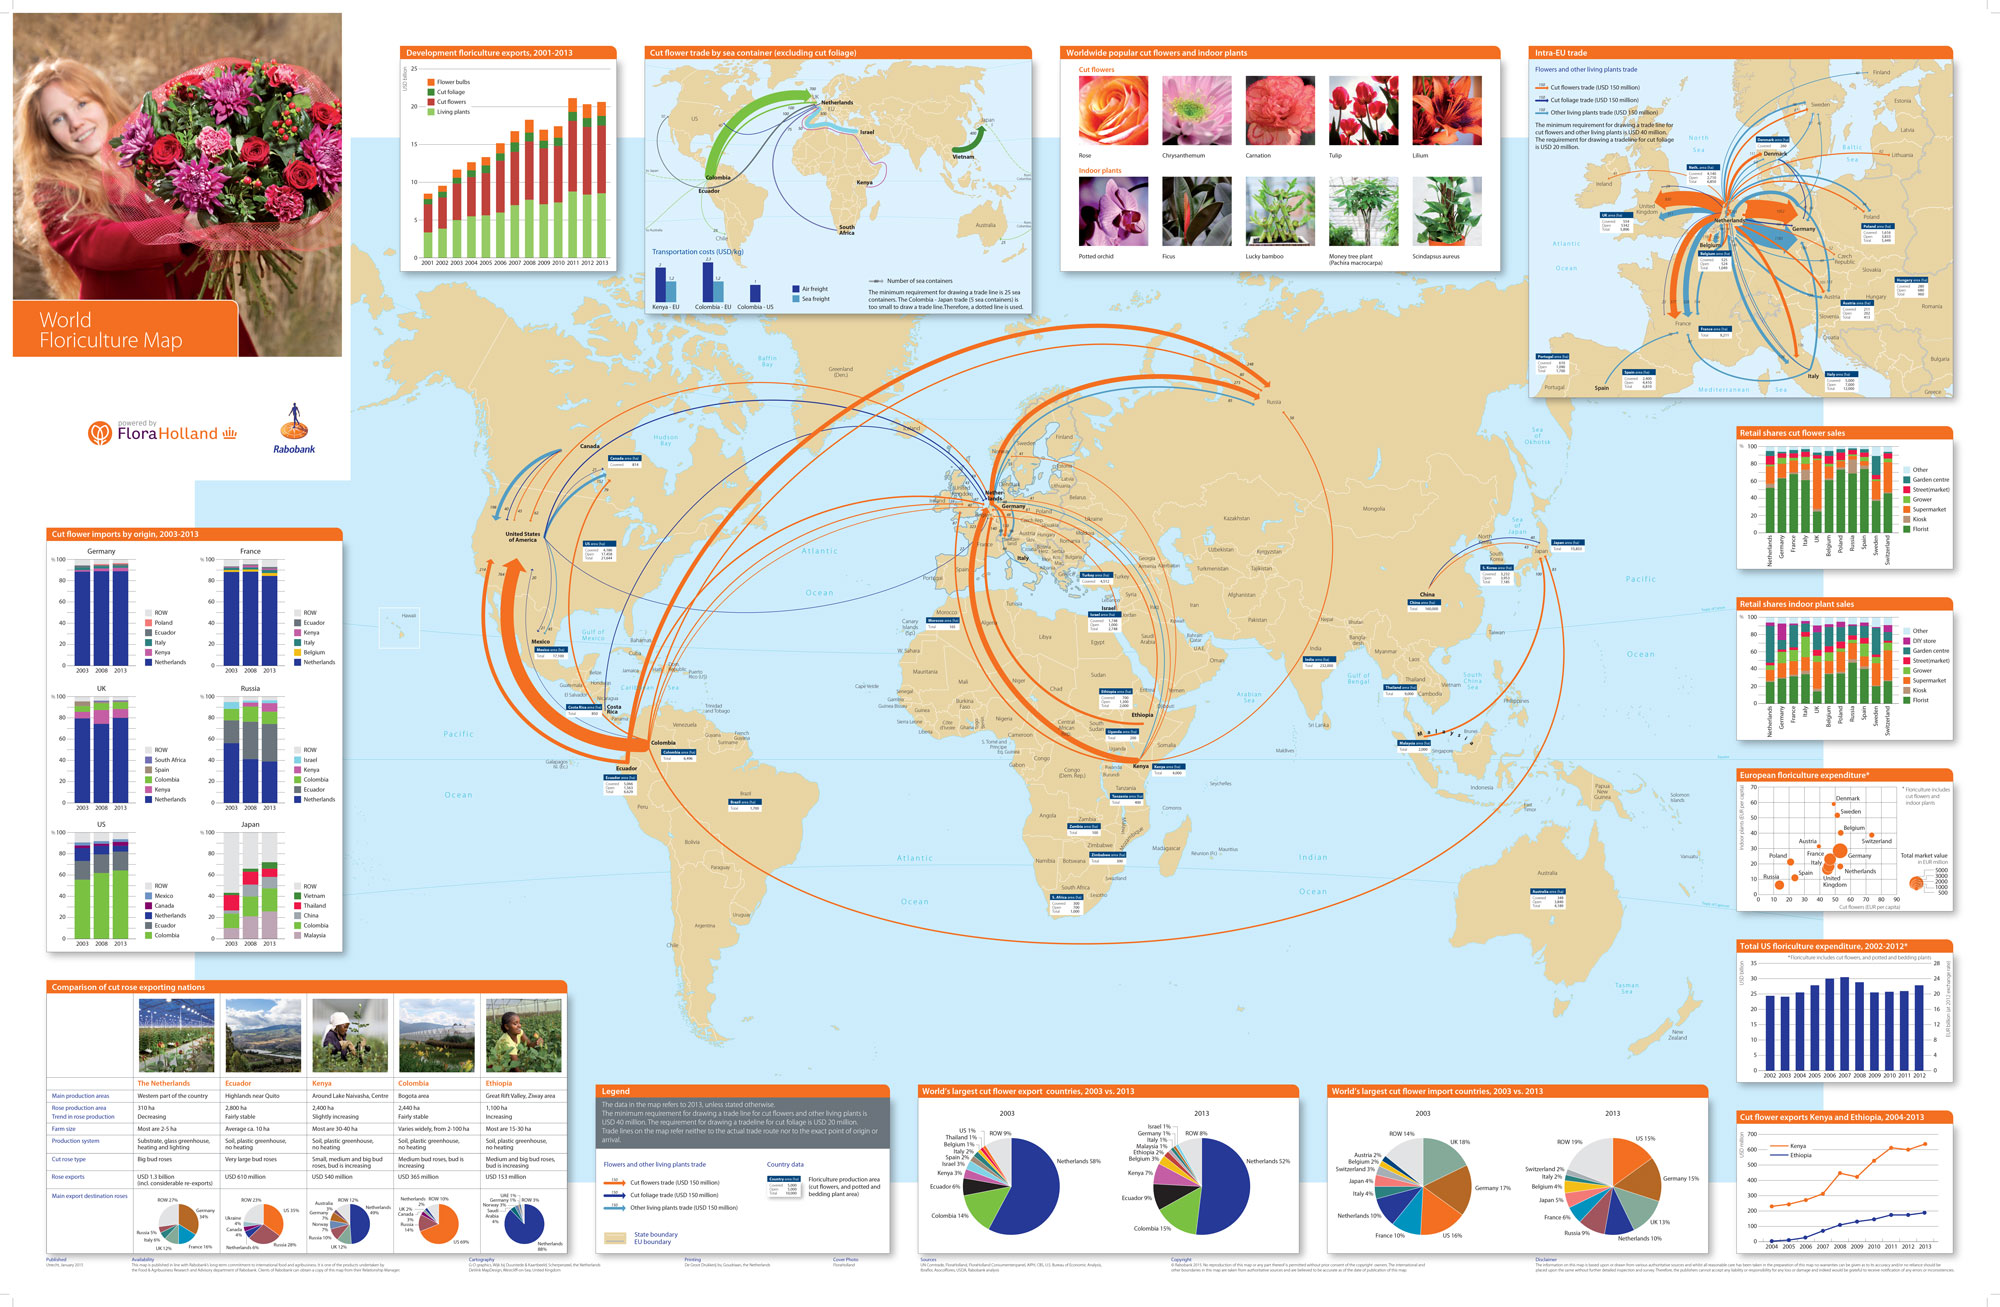 visualisation of global floriculture trade flows